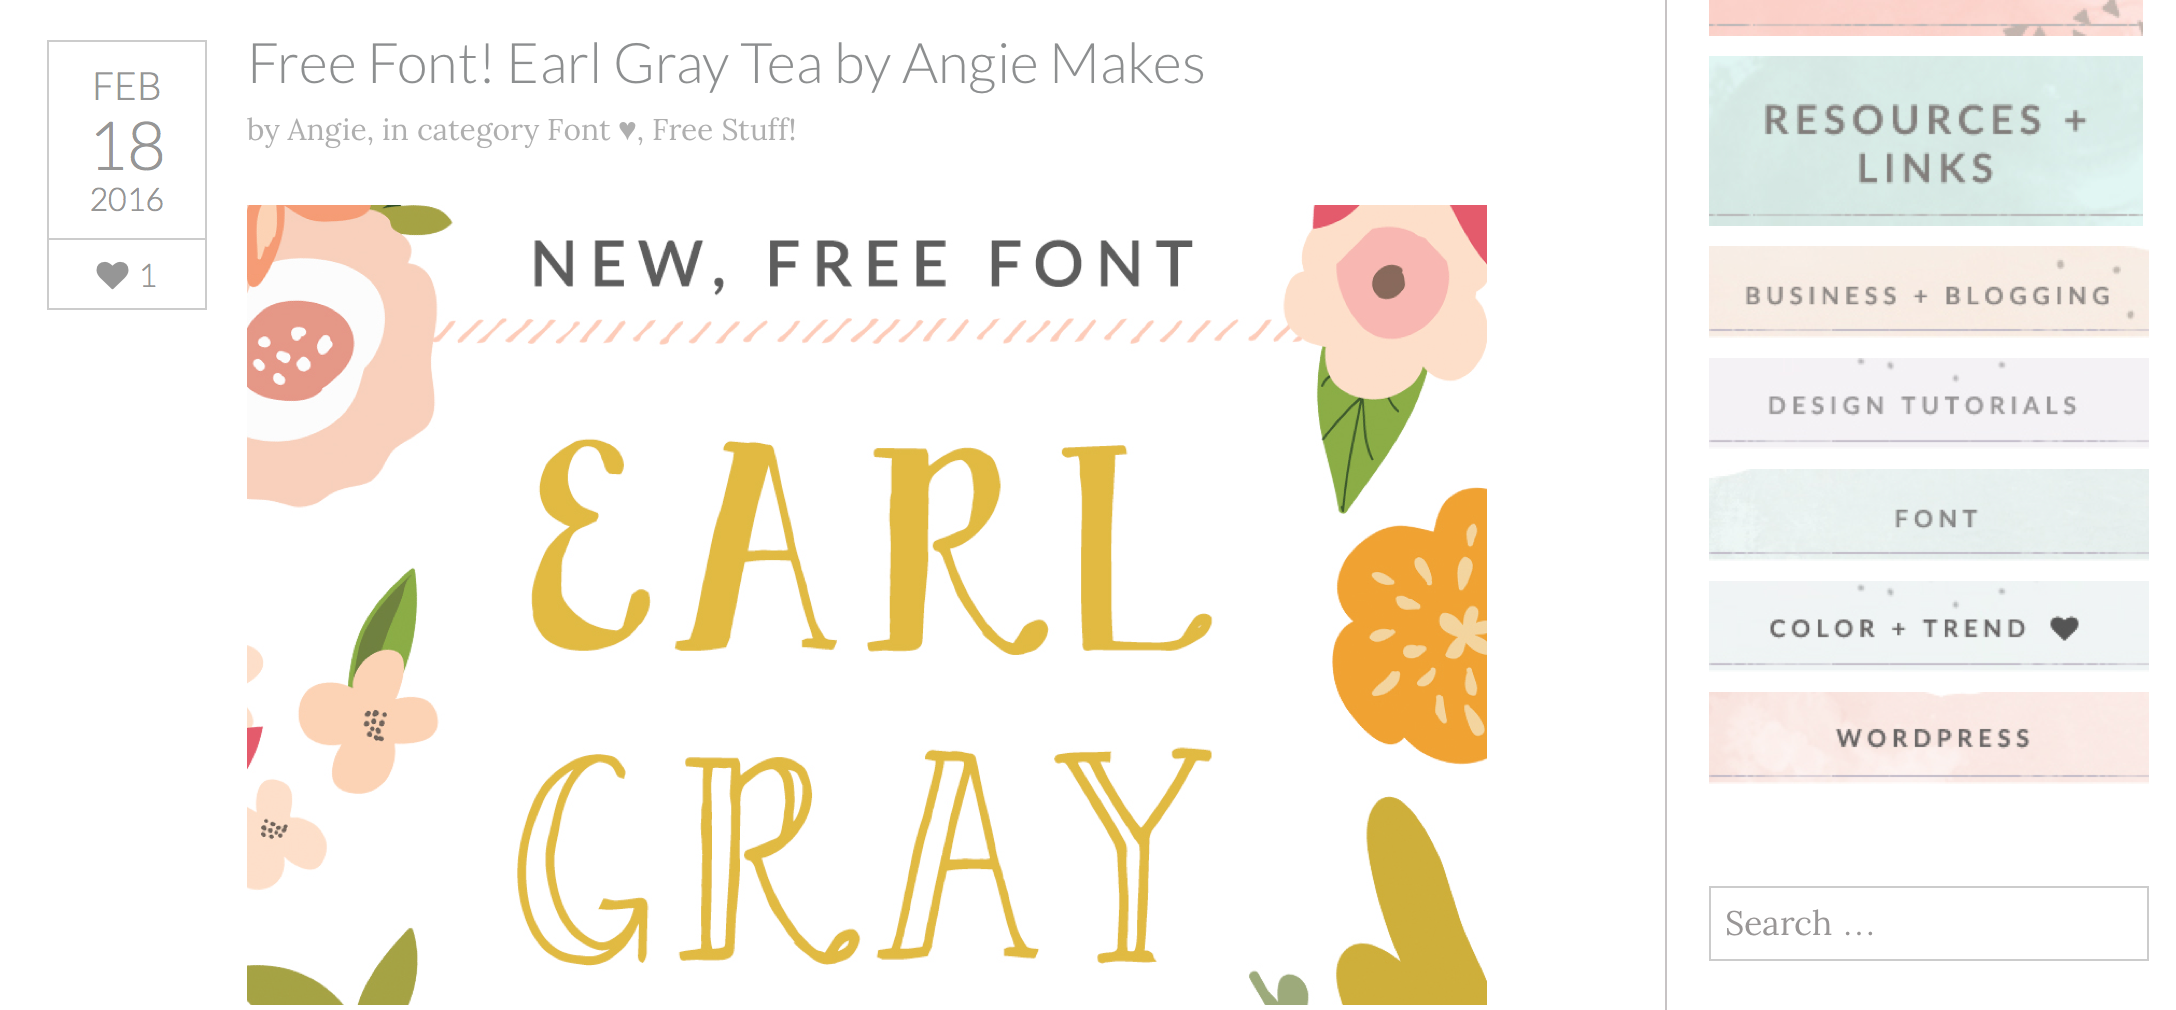 angie-makes-fonts-for-DIY-designers.jpg